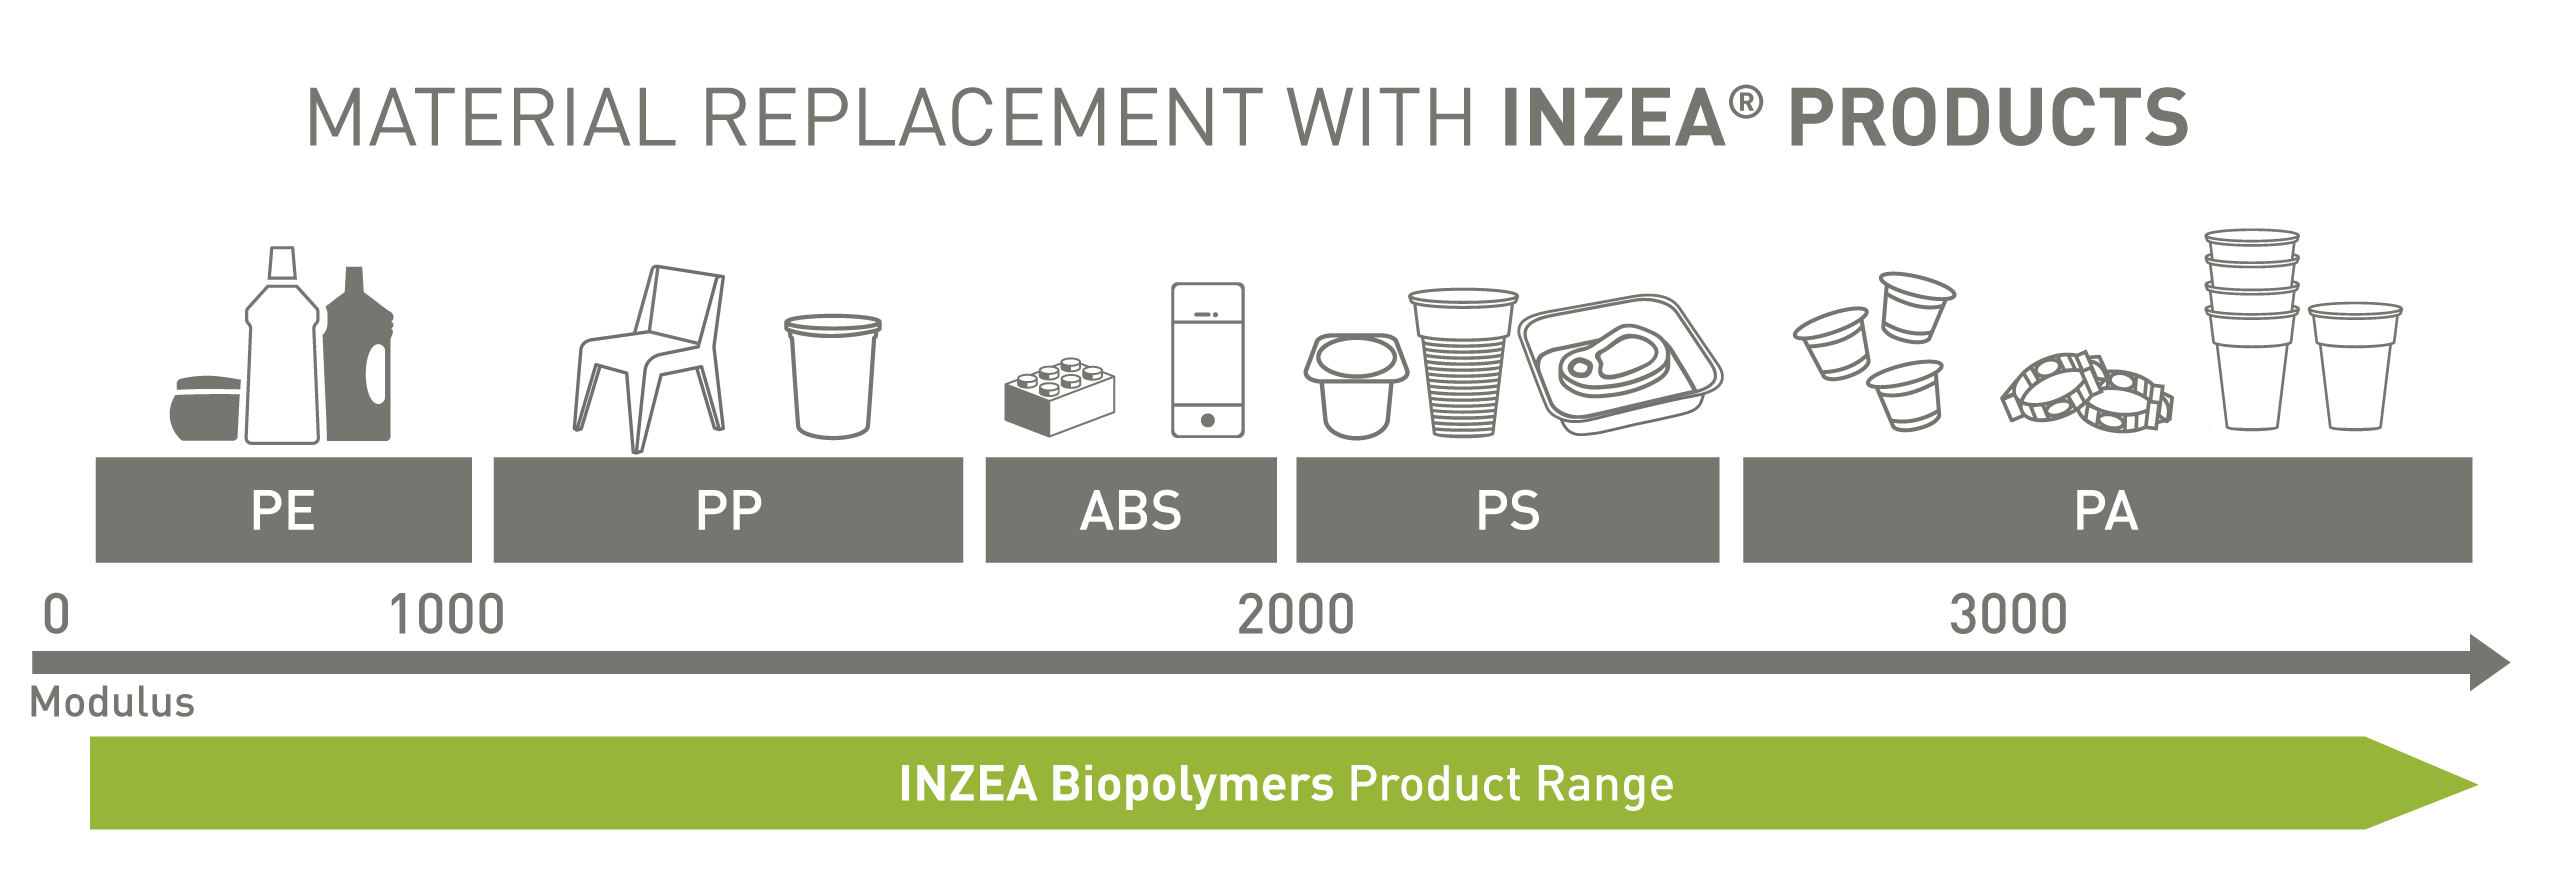 INZEA® biopolymers material replacement.